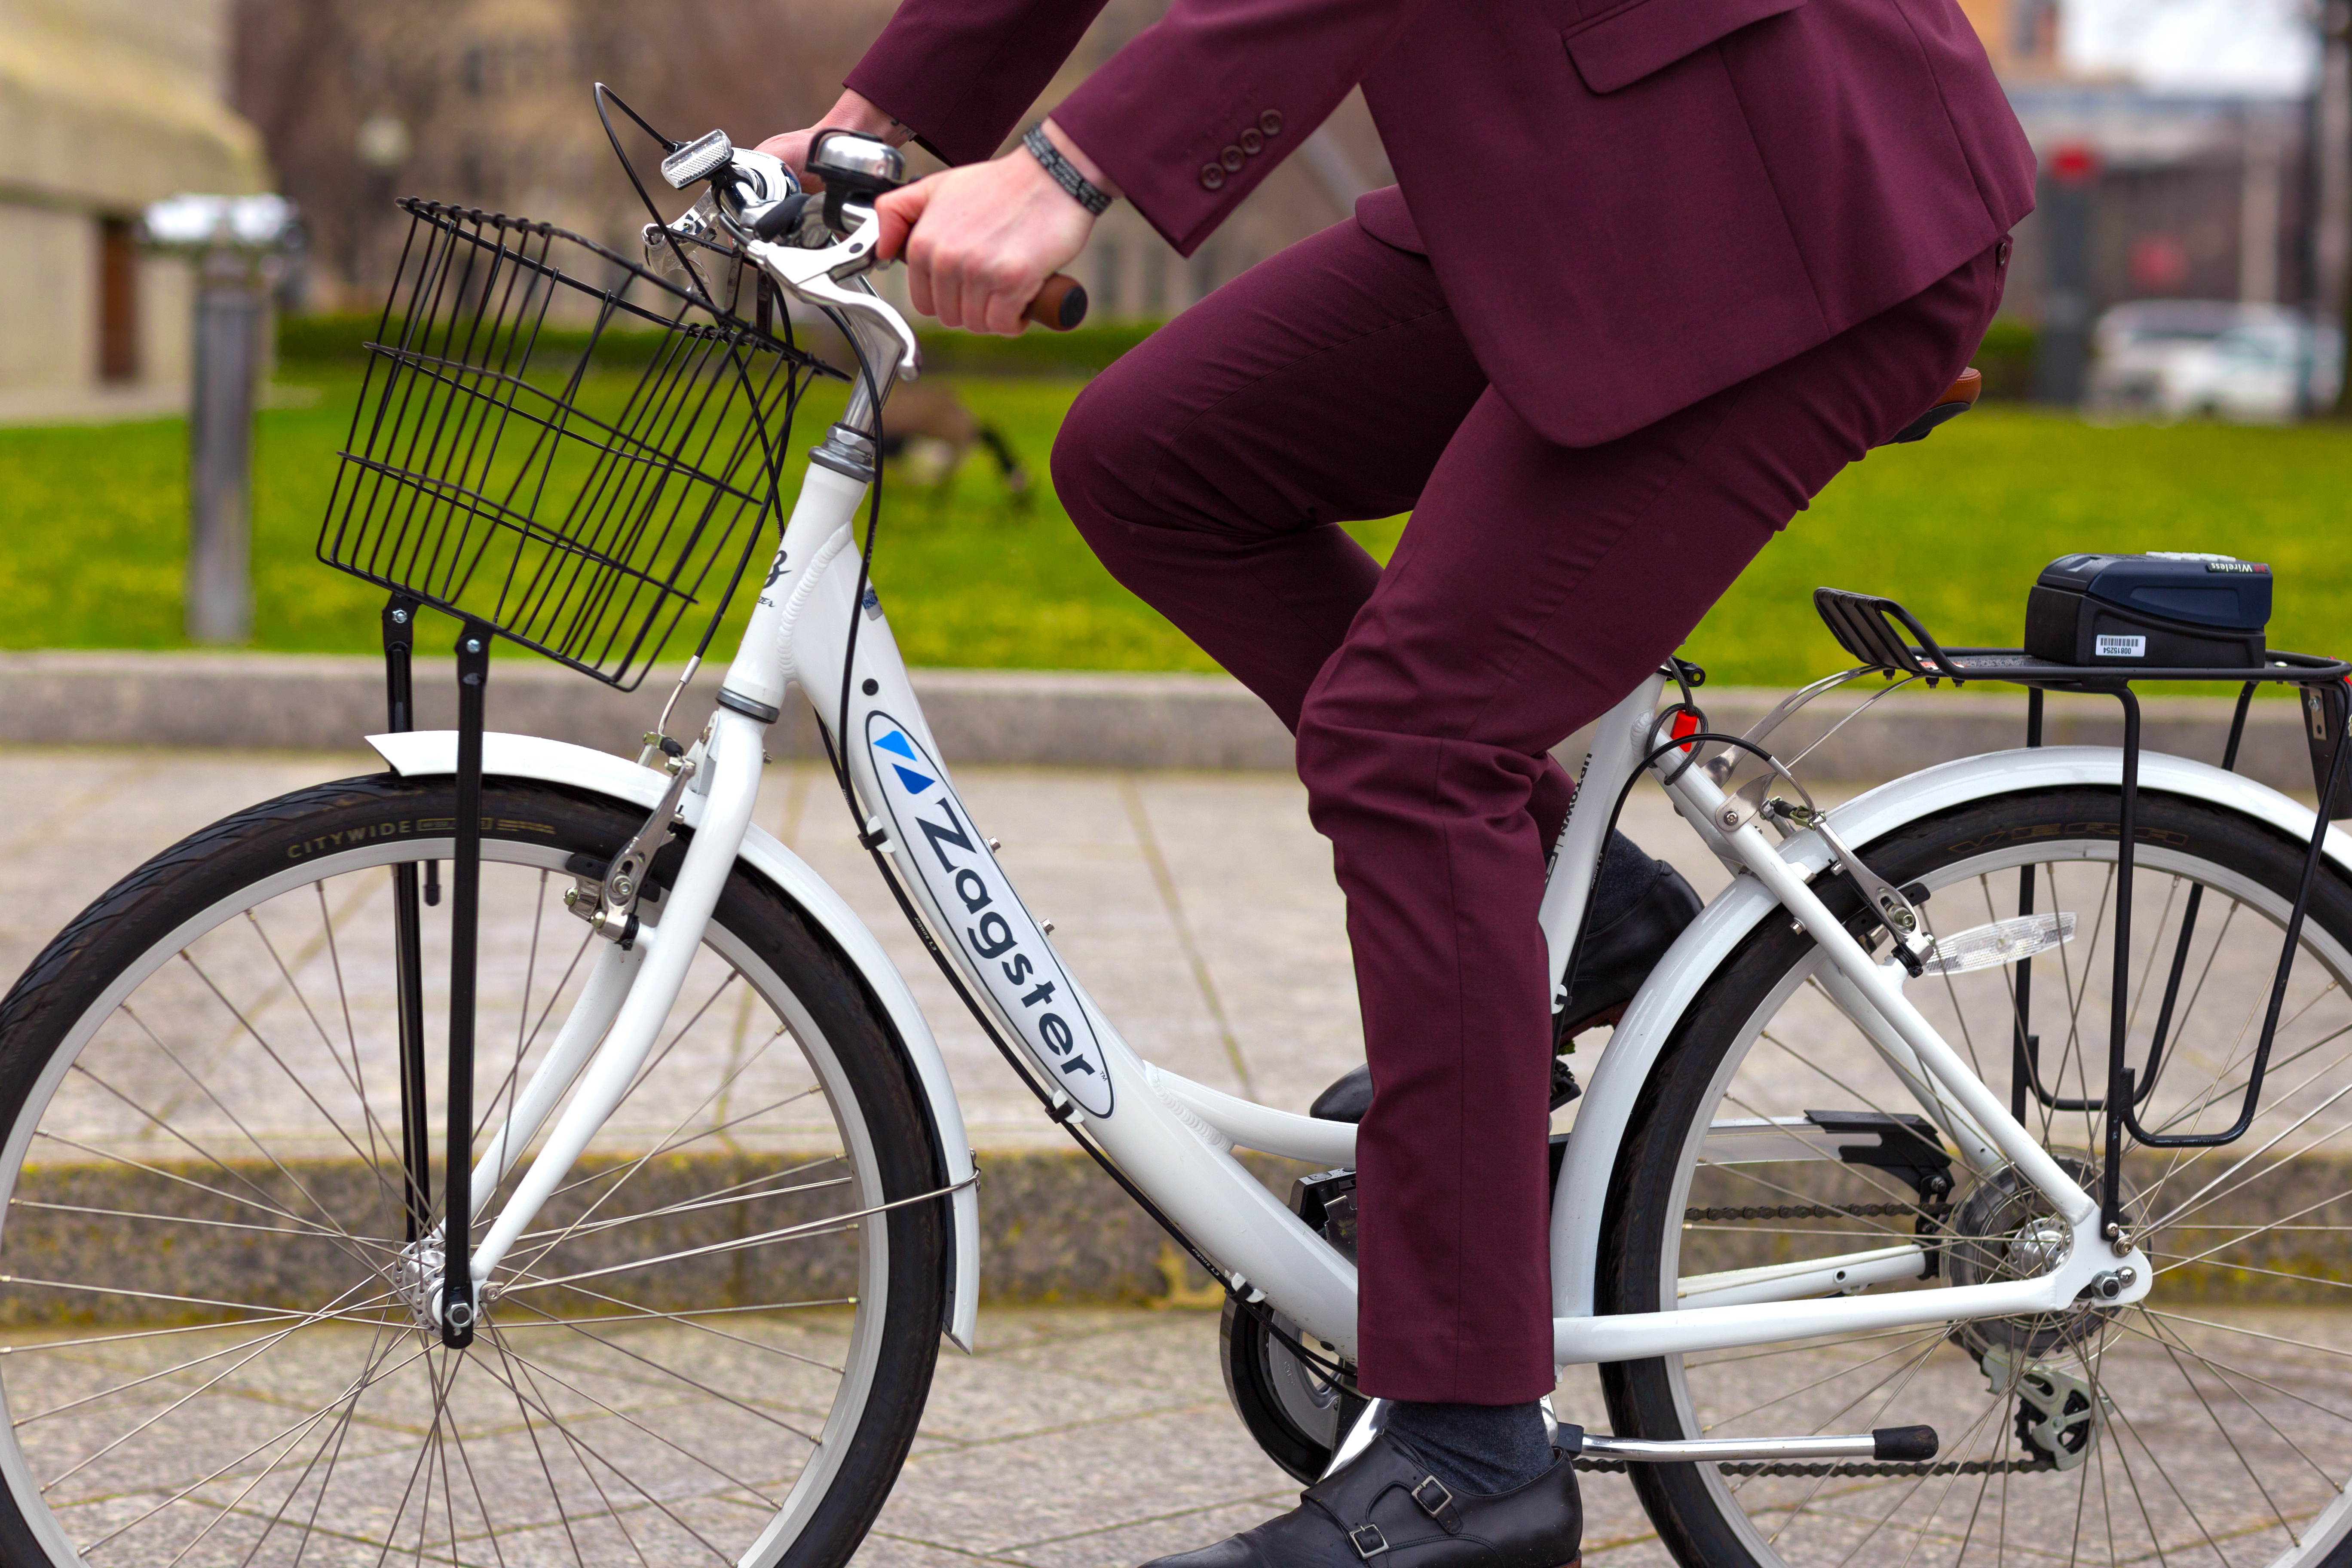 A Zagster shared bike in action.